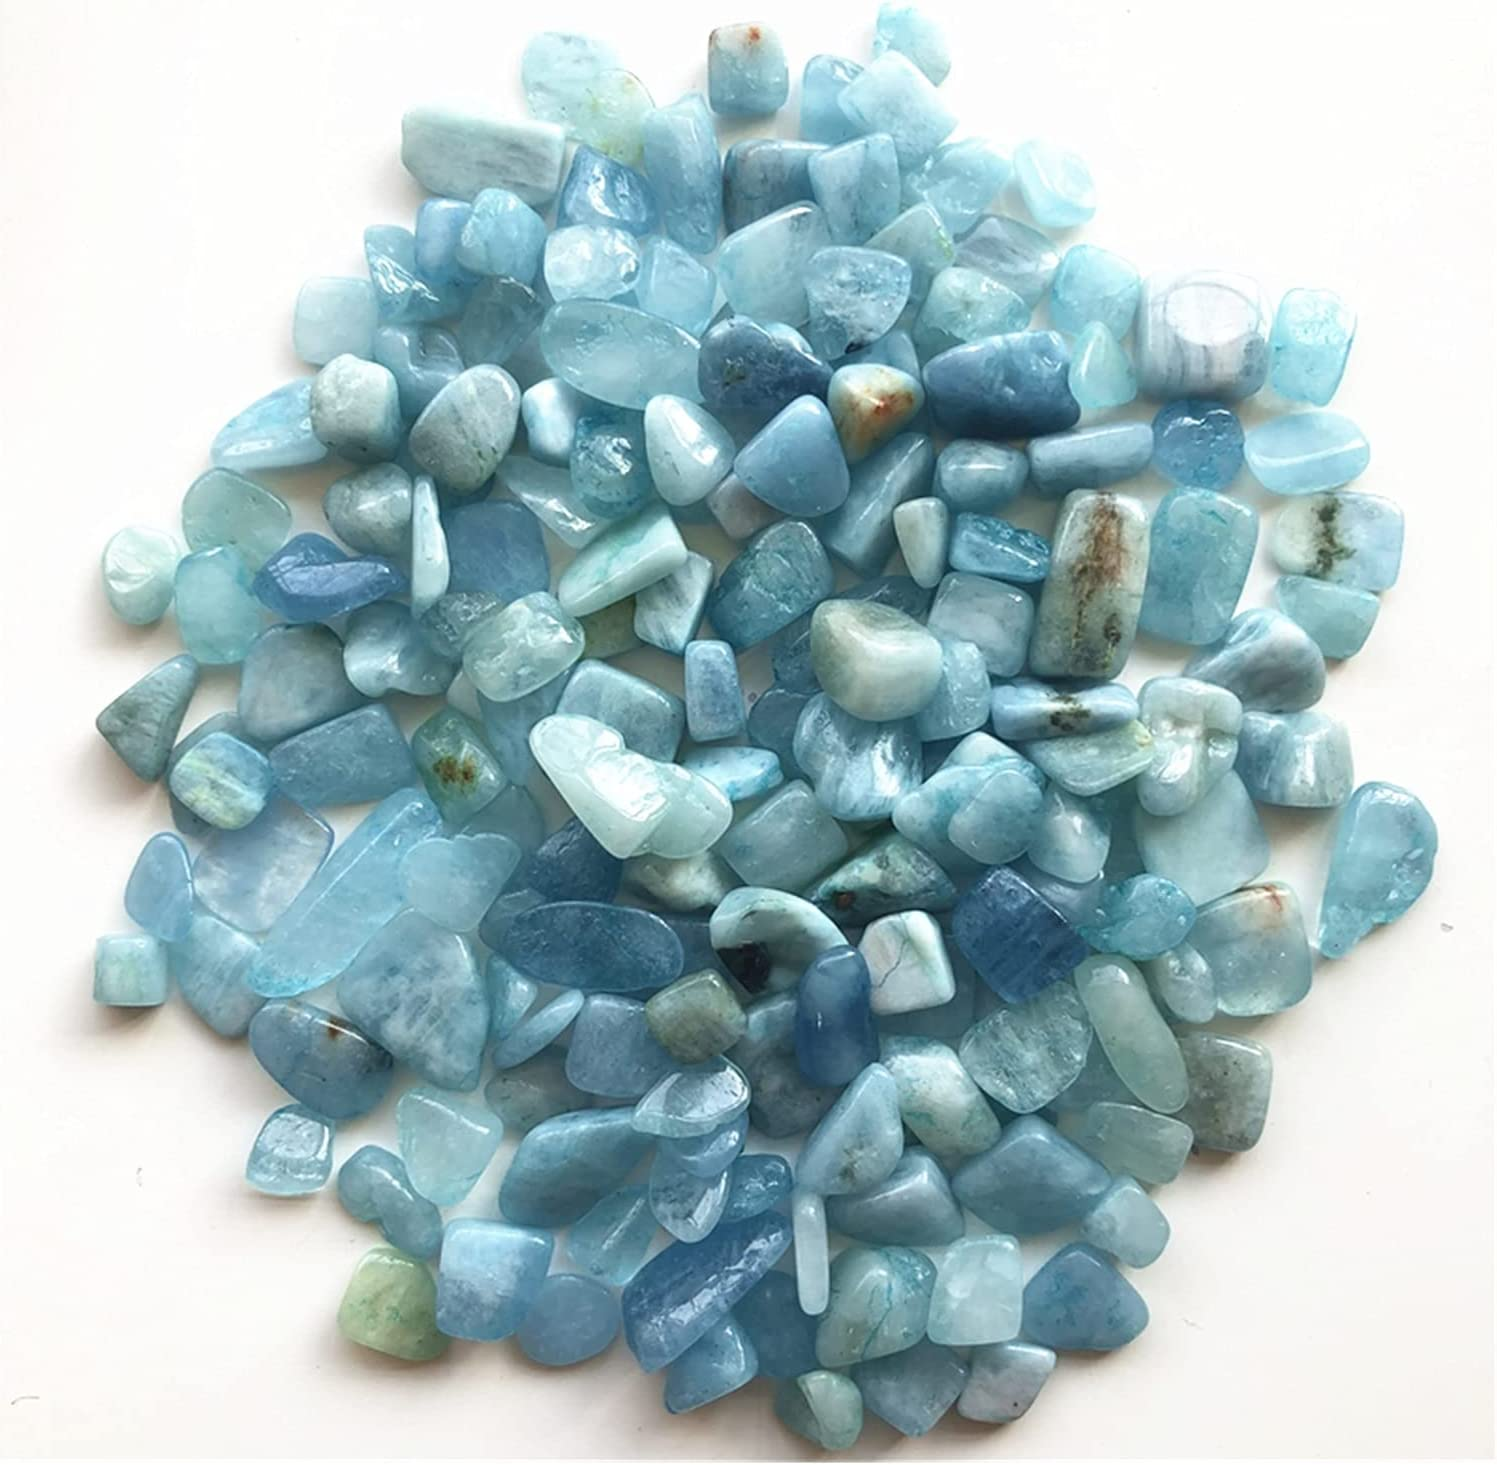 AILIDON Gravel 50g 8-12mm Natural Aquamarine Cryst Quartz Super sale period limited Sales of SALE items from new works